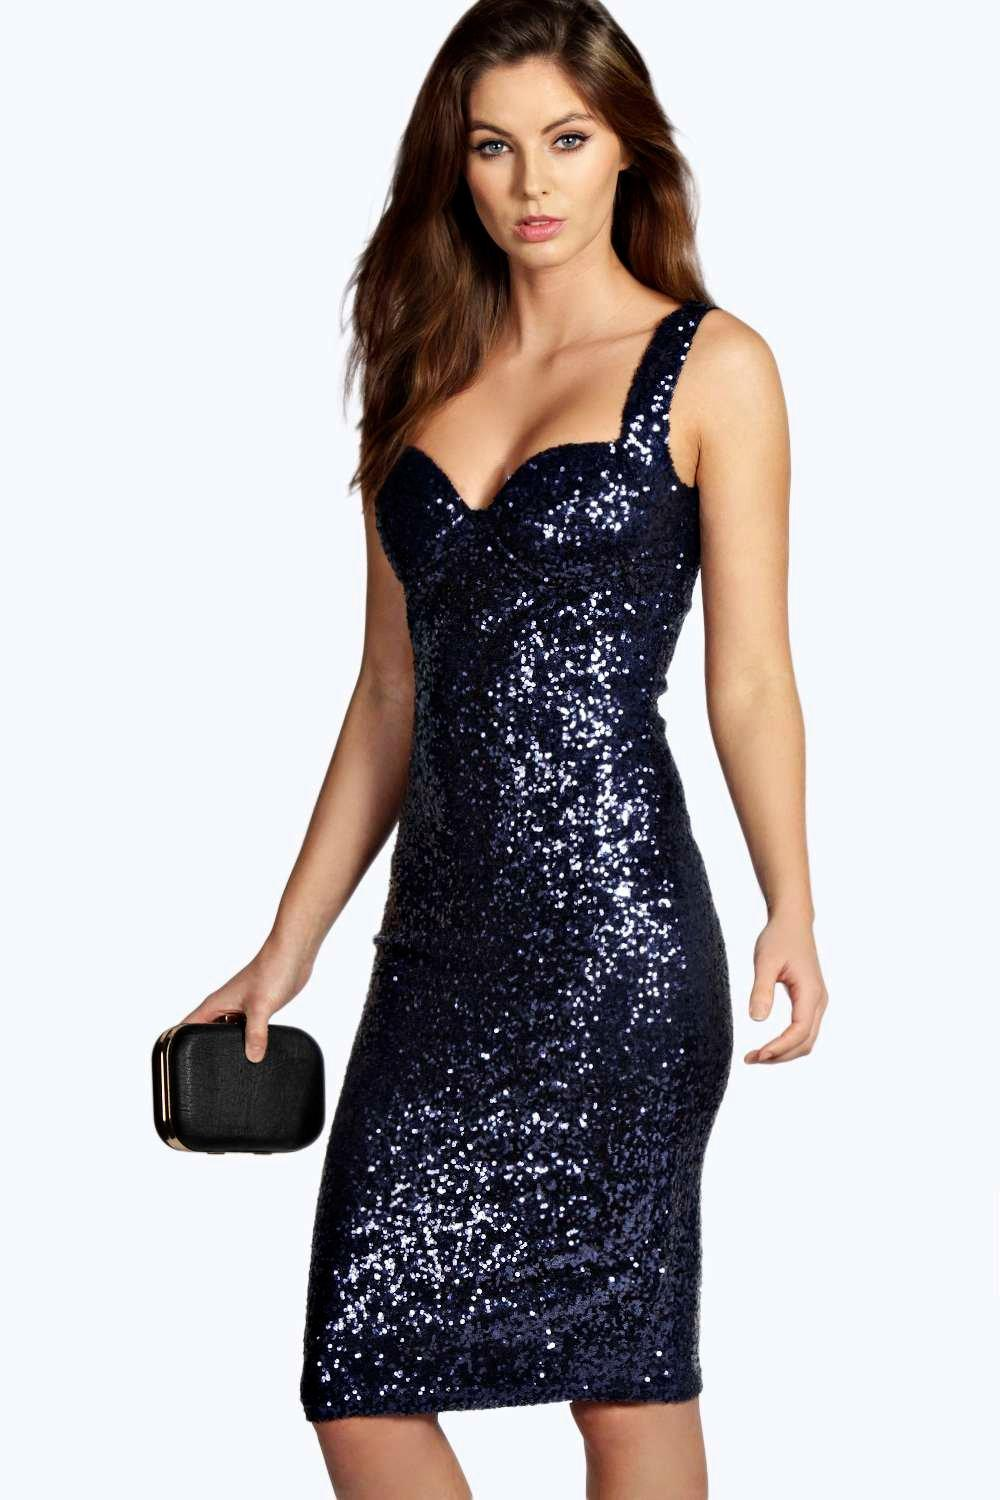 Boohoo Womens Kimmie Sequin Fitted Cups Midi Dress | eBay